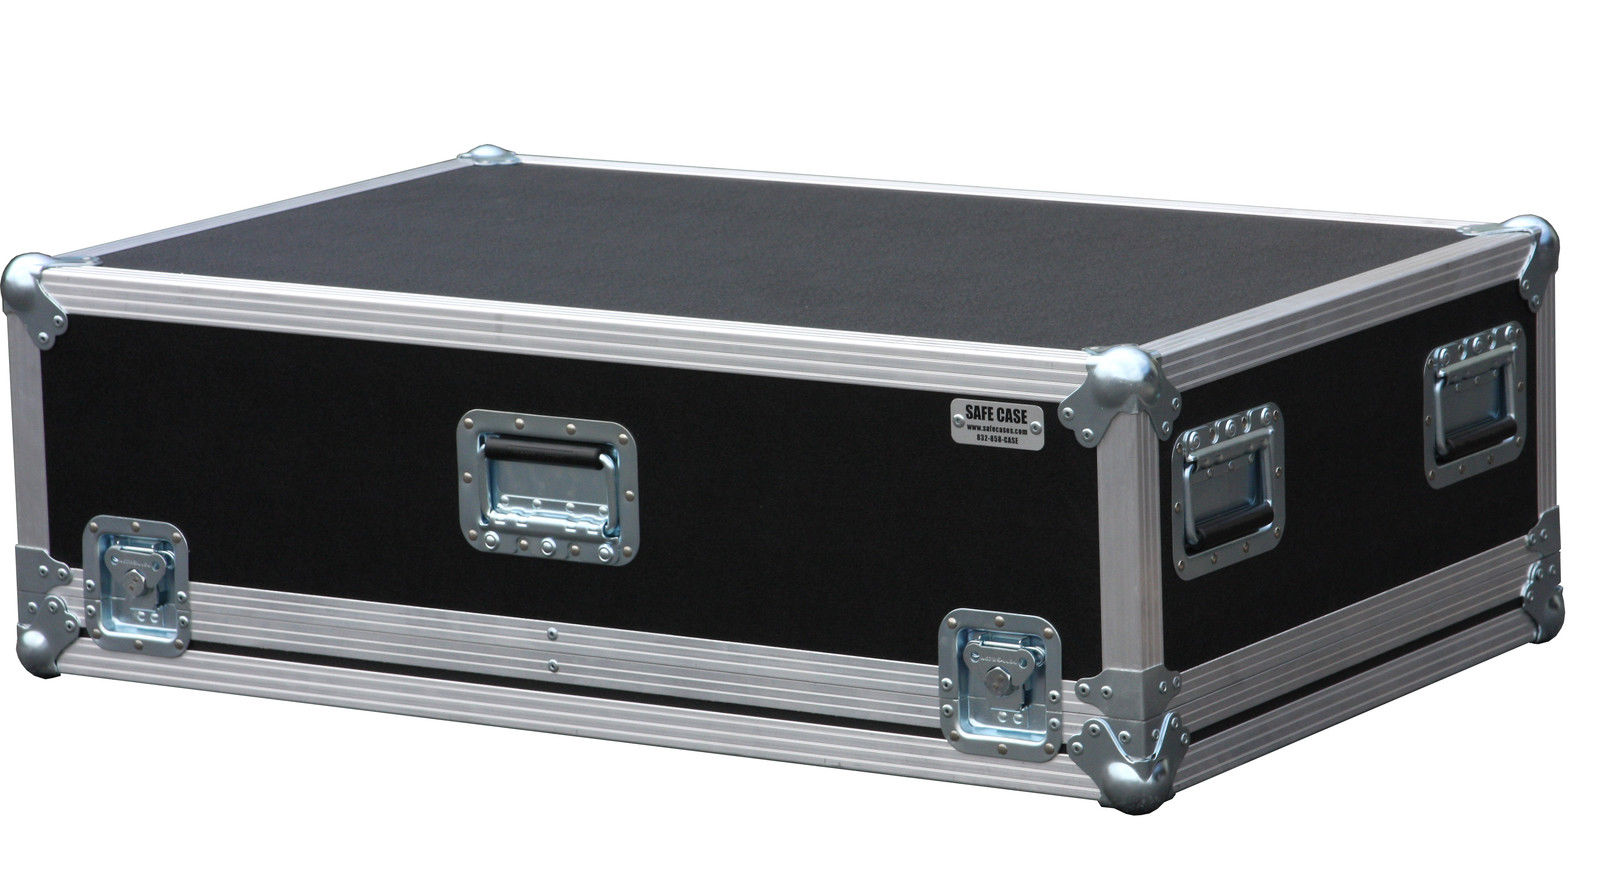 Ata Safecase For X32 W Dh together with Ata Safecase For Si Expression 3 as well Behringer 32x Dhc 1 X2 furthermore Si Expression 3 W Dh 1 2 besides  on ata safecase for presonus 16 4 2 w dh